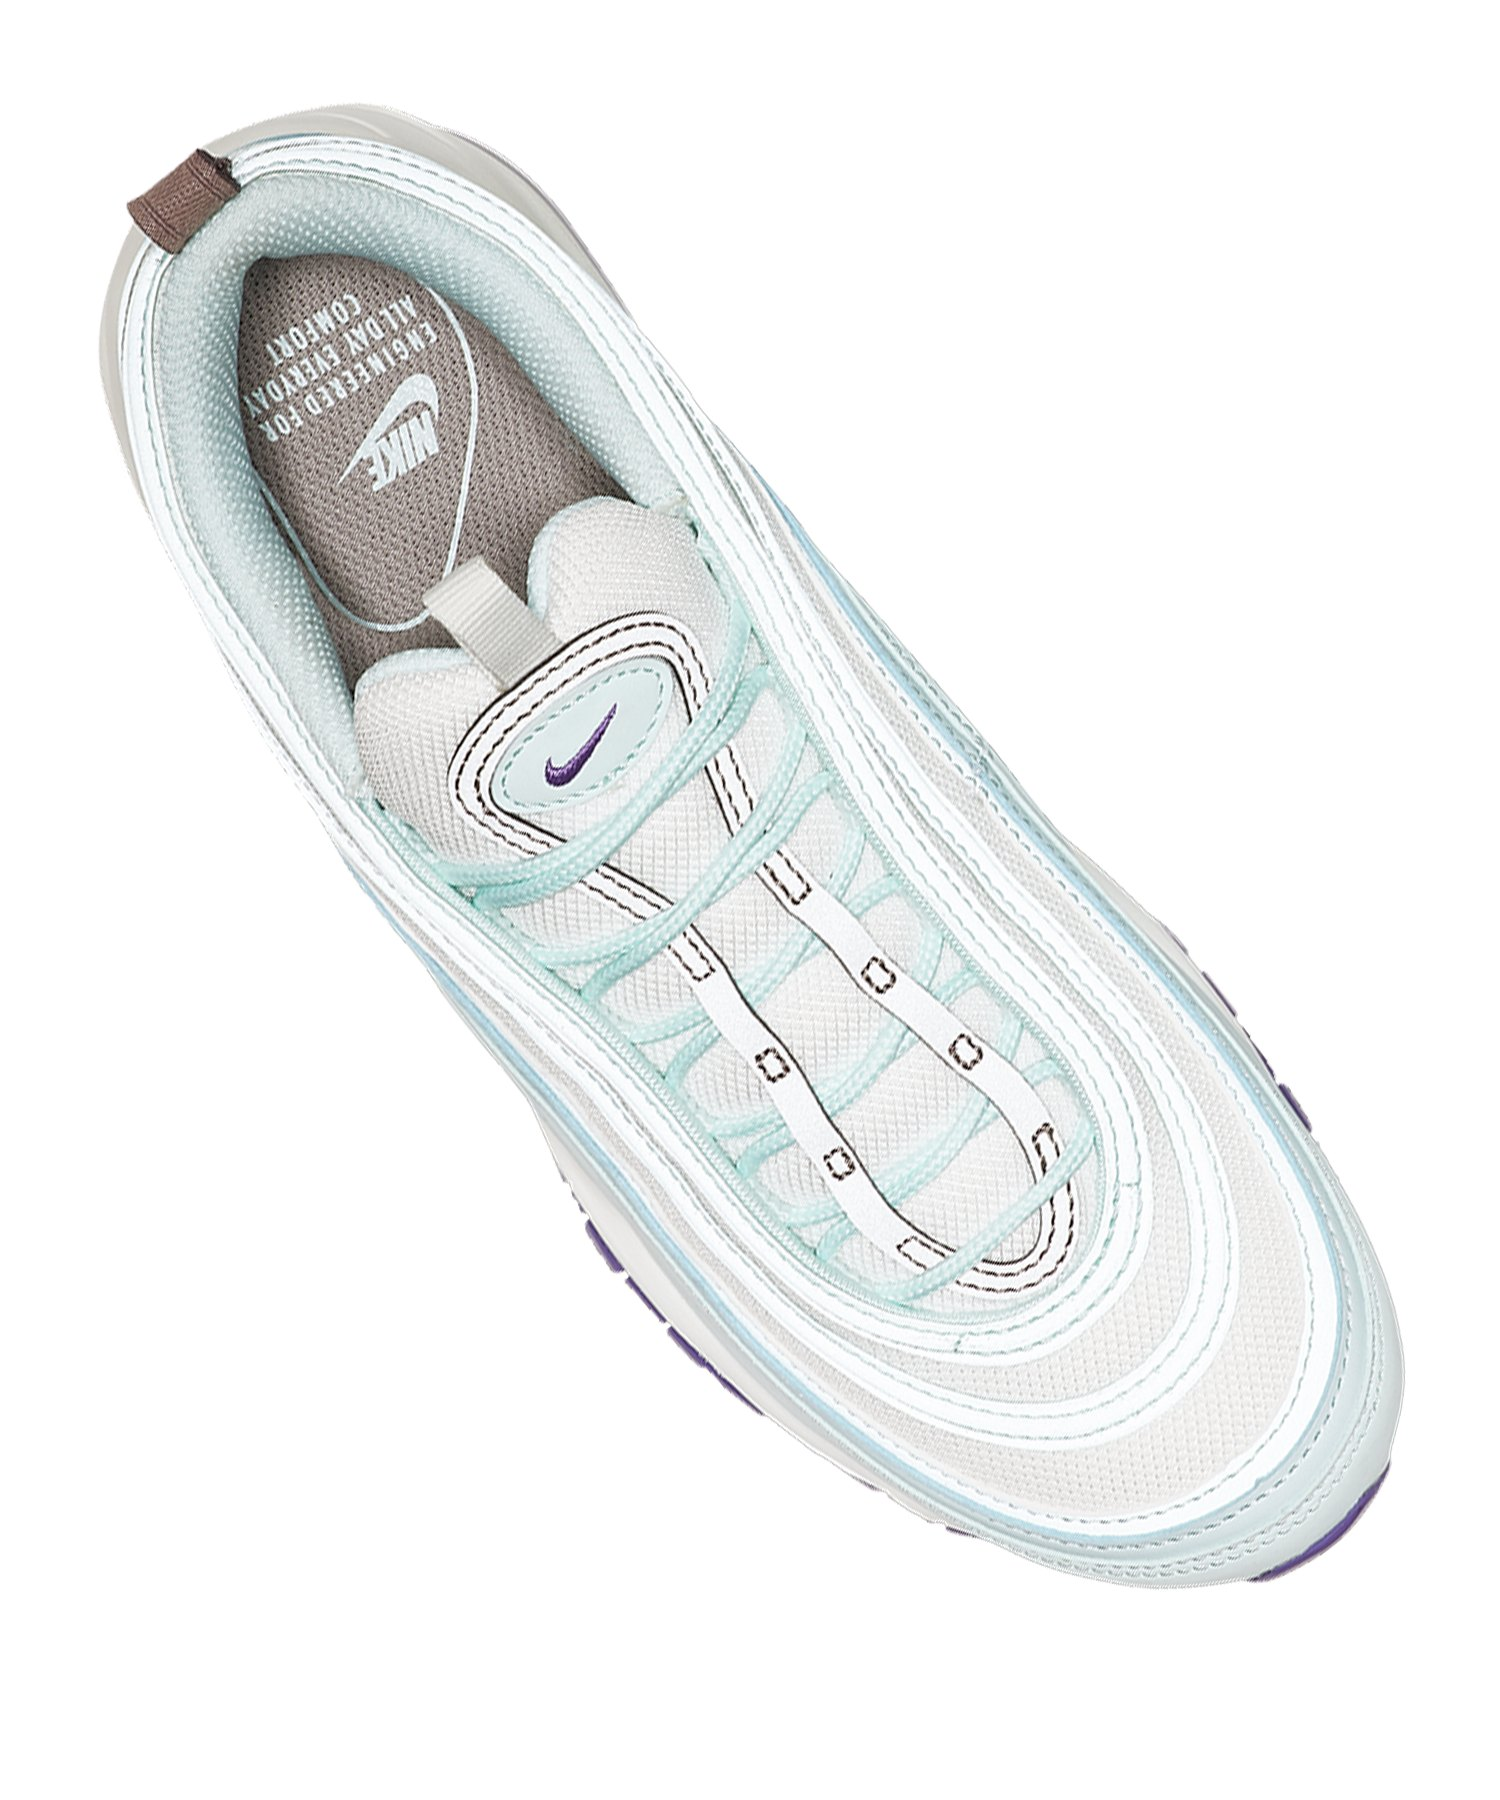 the latest bca03 6deed ... Nike Air Max 97 Sneaker Damen Blau Weiss Lila F303 - blau ...